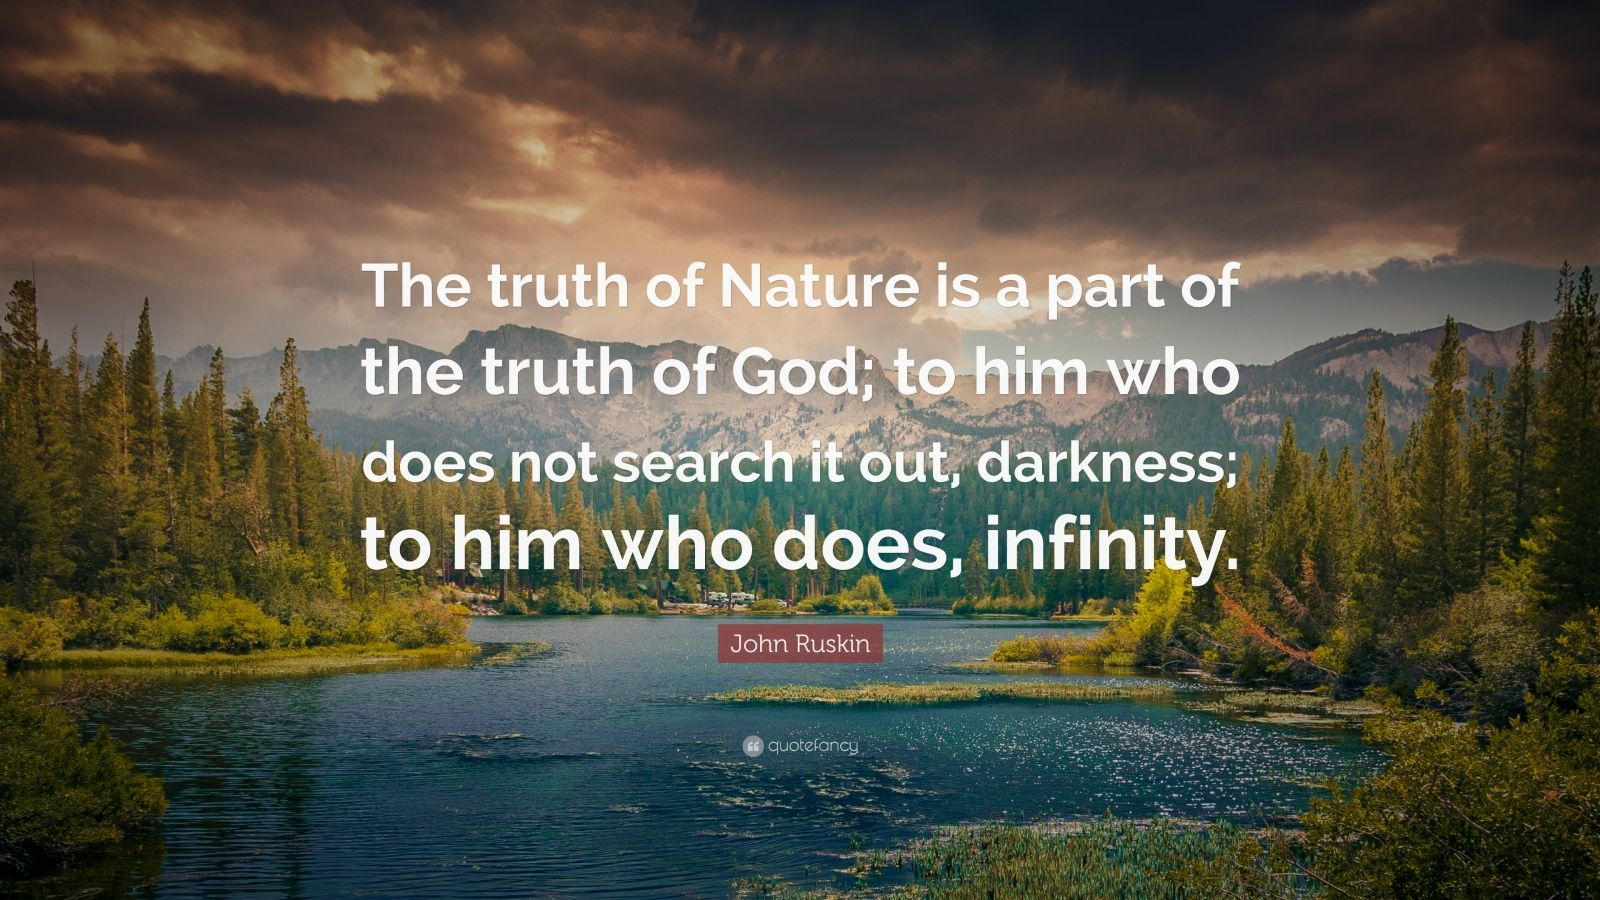 """John Ruskin Quote: """"The truth of Nature is a part of the truth of God; to him who does not search it out, darkness; to him who does, infinity."""""""